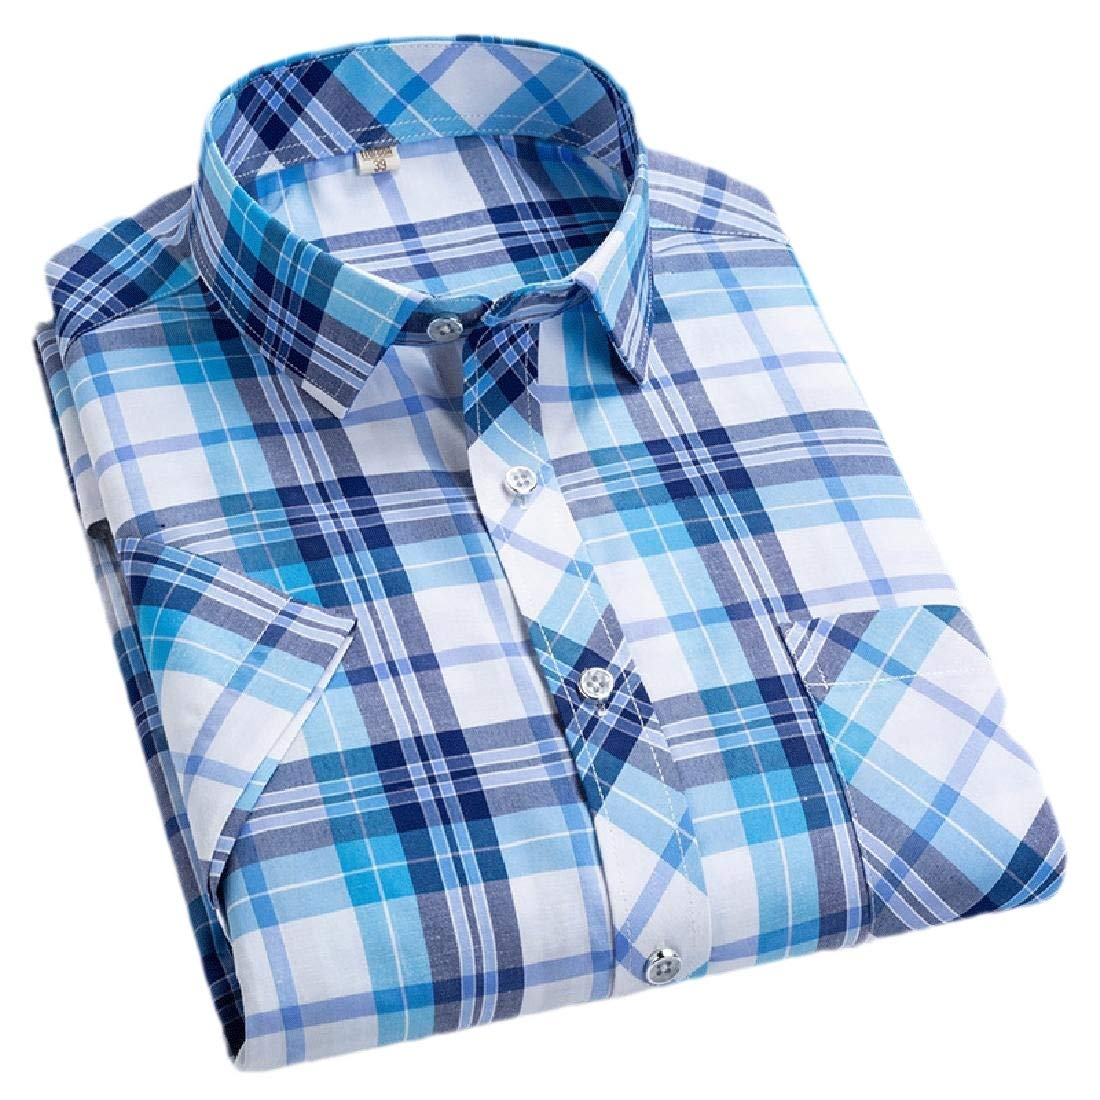 omniscient Men Basic Casual Short Sleeve Plaid Checkered Gingham Dress Shirts